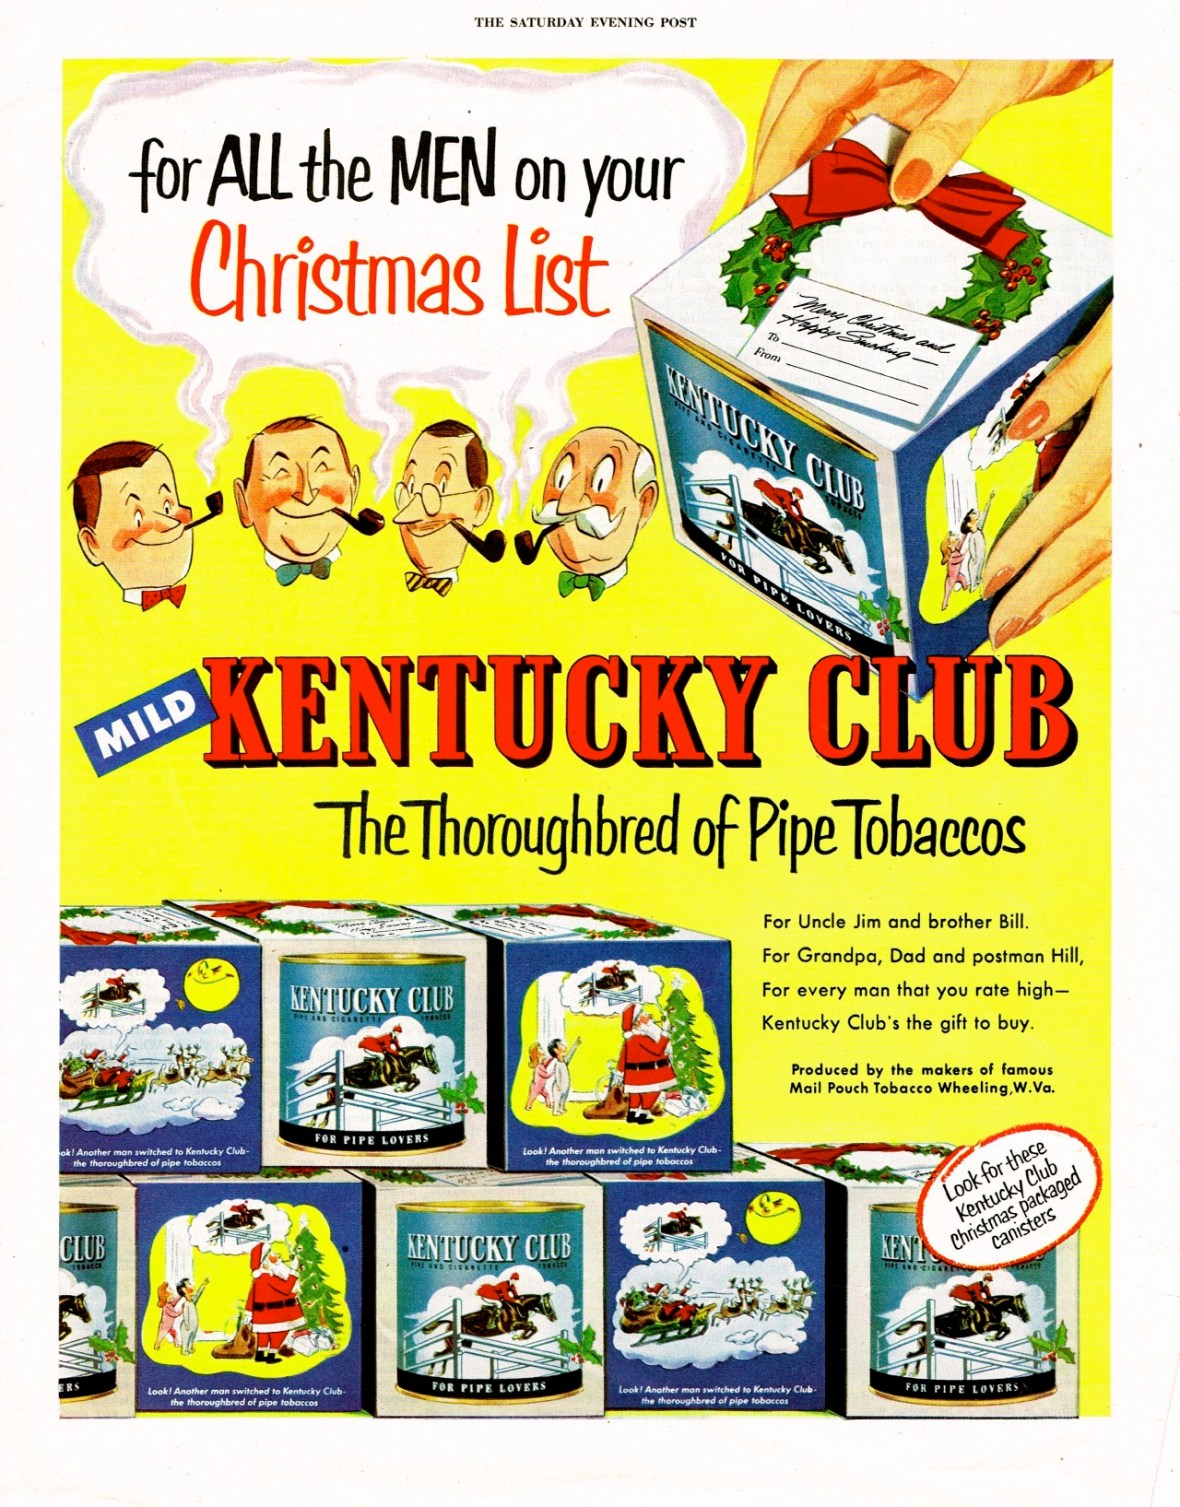 Kentucky Club - published in The Saturday Evening Post - 1953